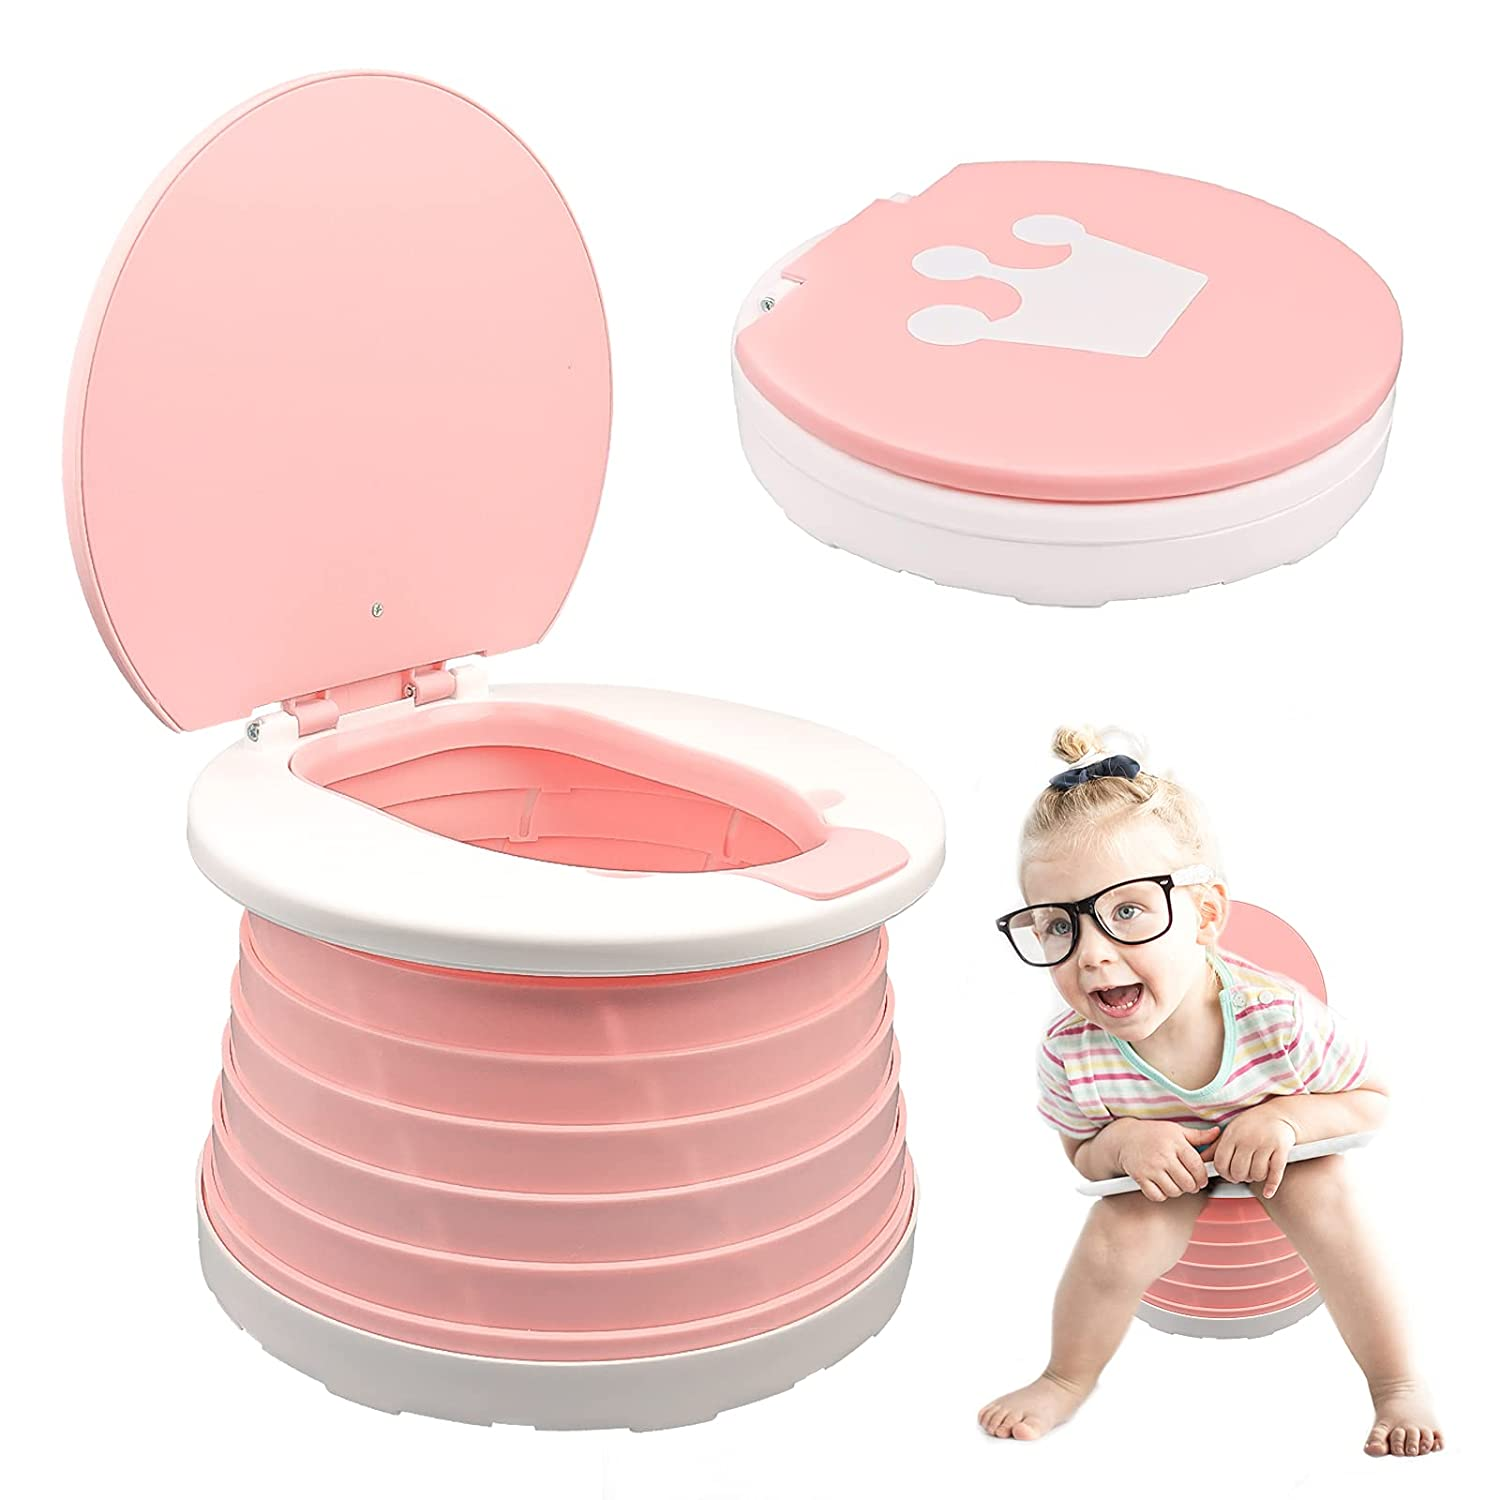 2-in-1 Portable Potty Trainer for Toddlers Foldable Travel Potty Training Seat Toilet for Toddlers Kids Car Travel Outdoor Picnic Camping with 15 Potty Liners (Pink)